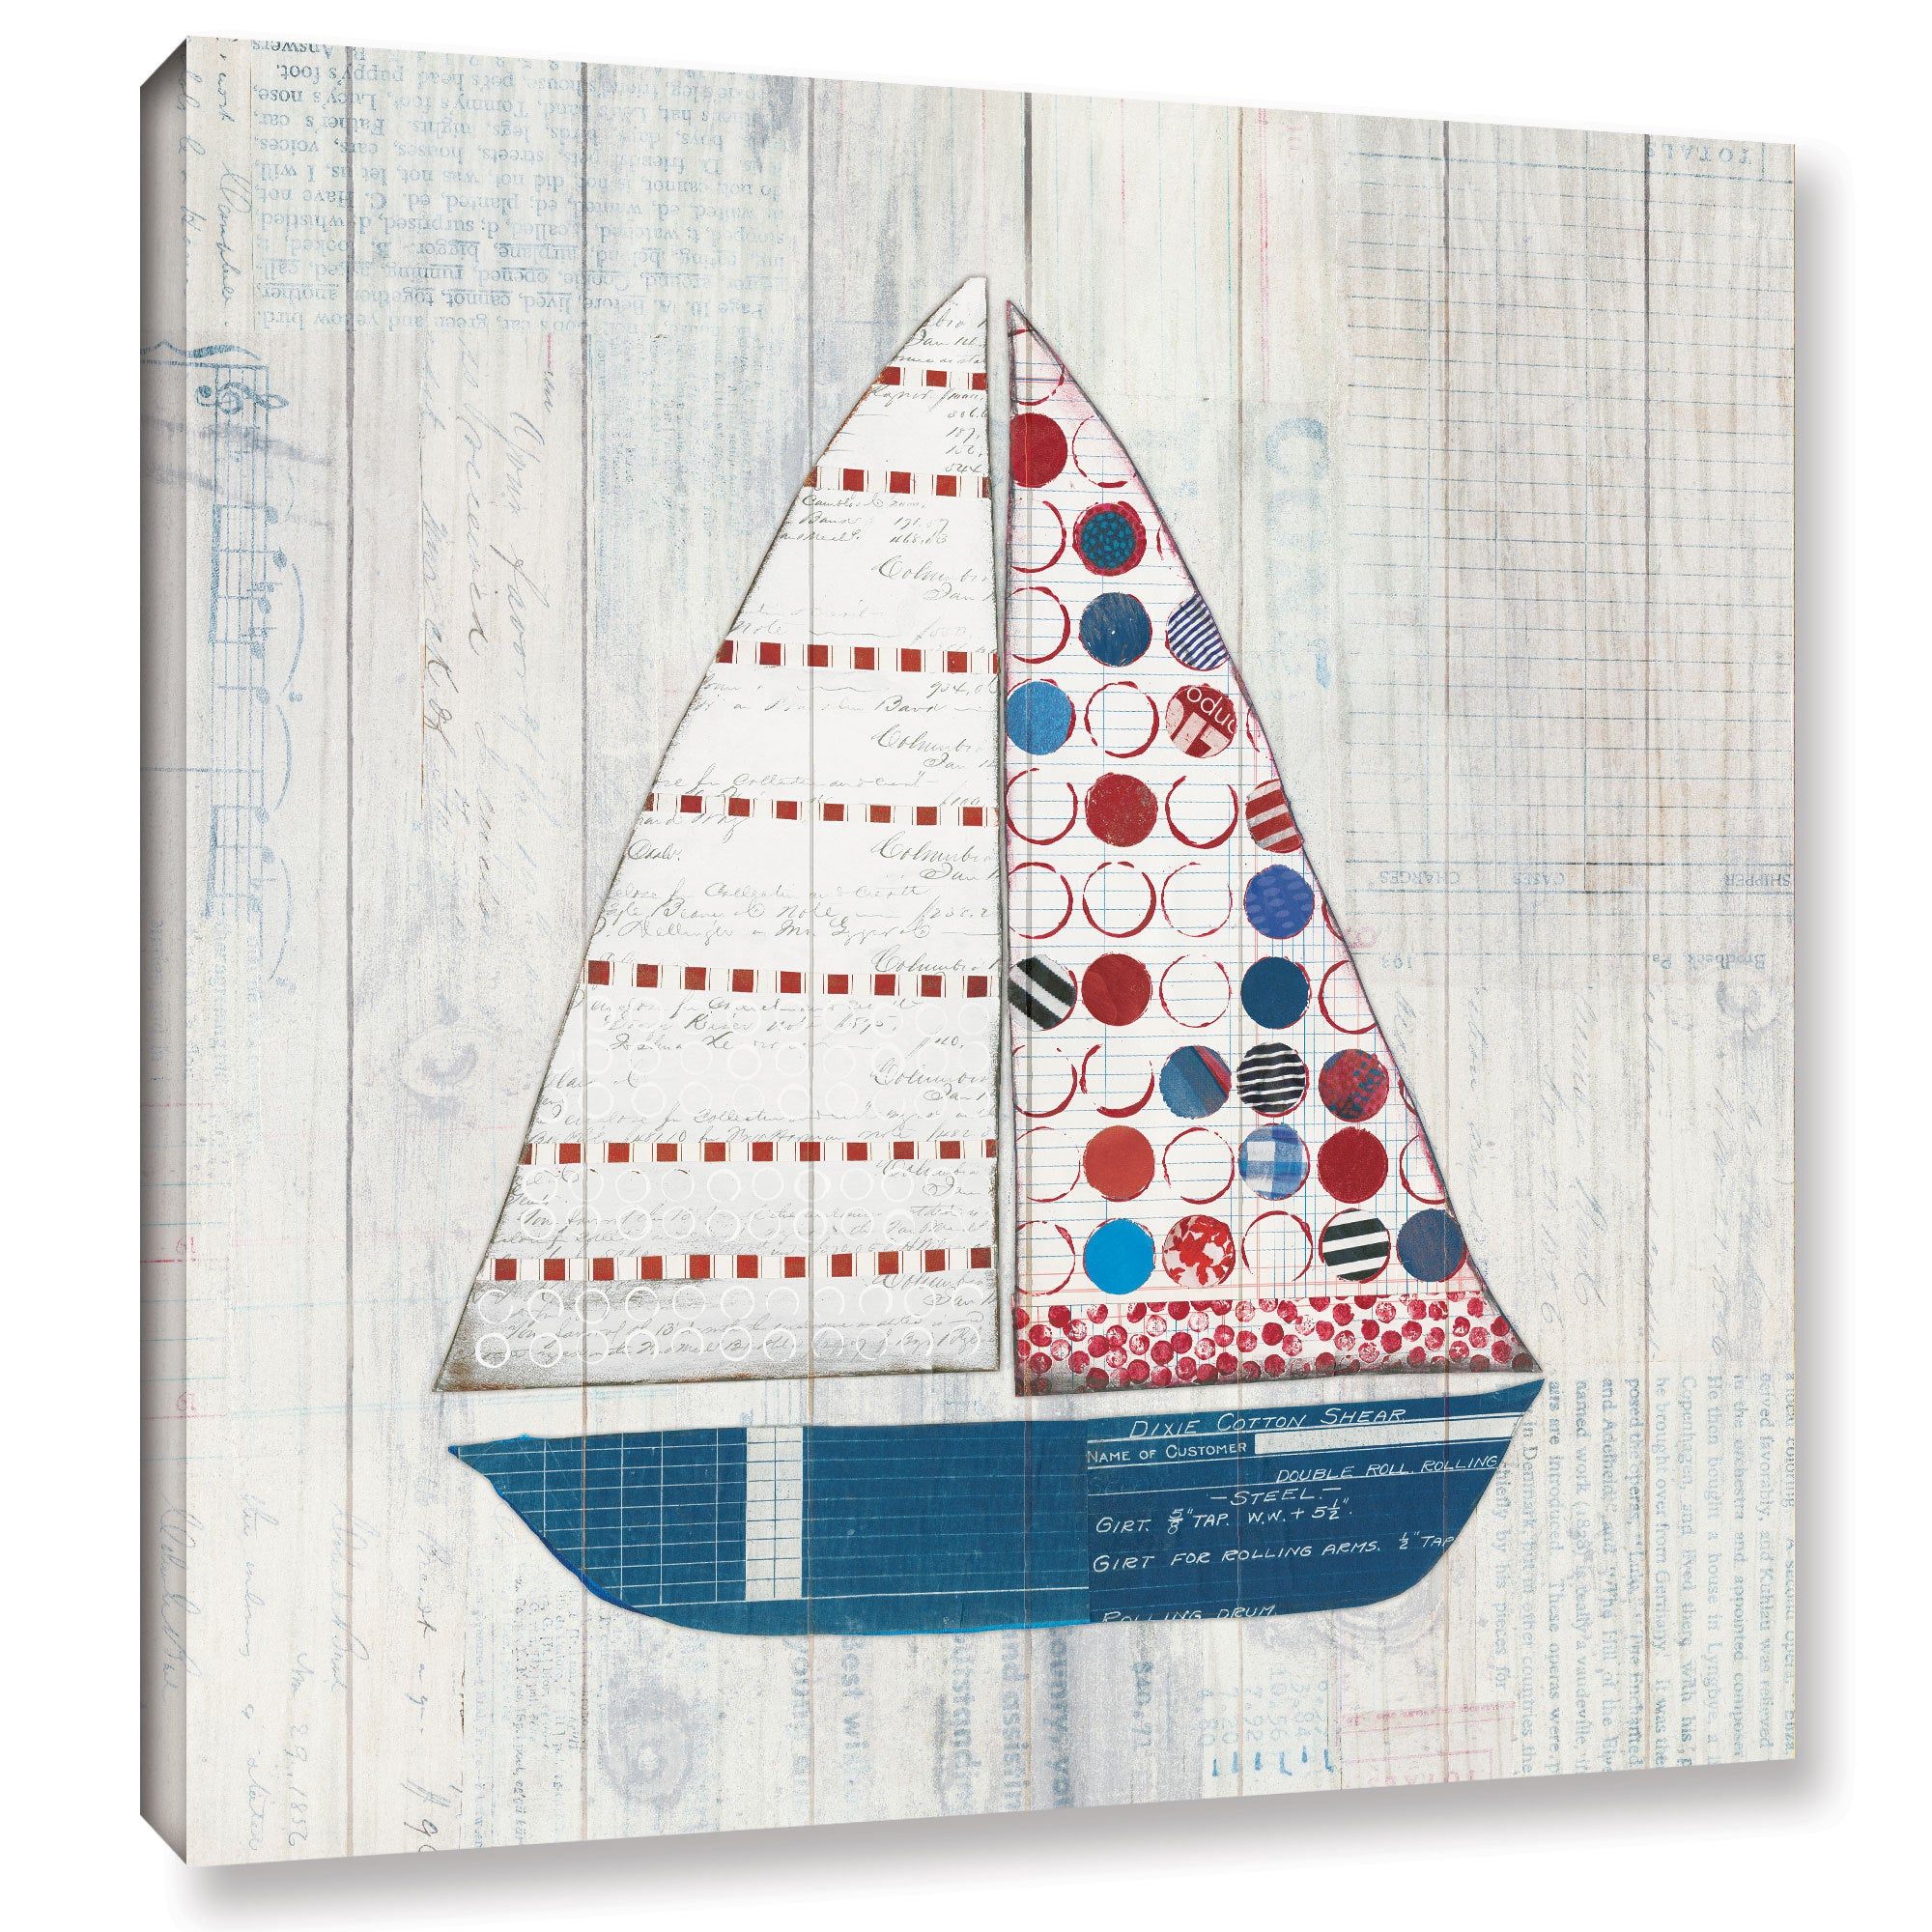 Courtney Prahl's 'Wind and Waves I Nautical' Gallery Wrapped Canvas